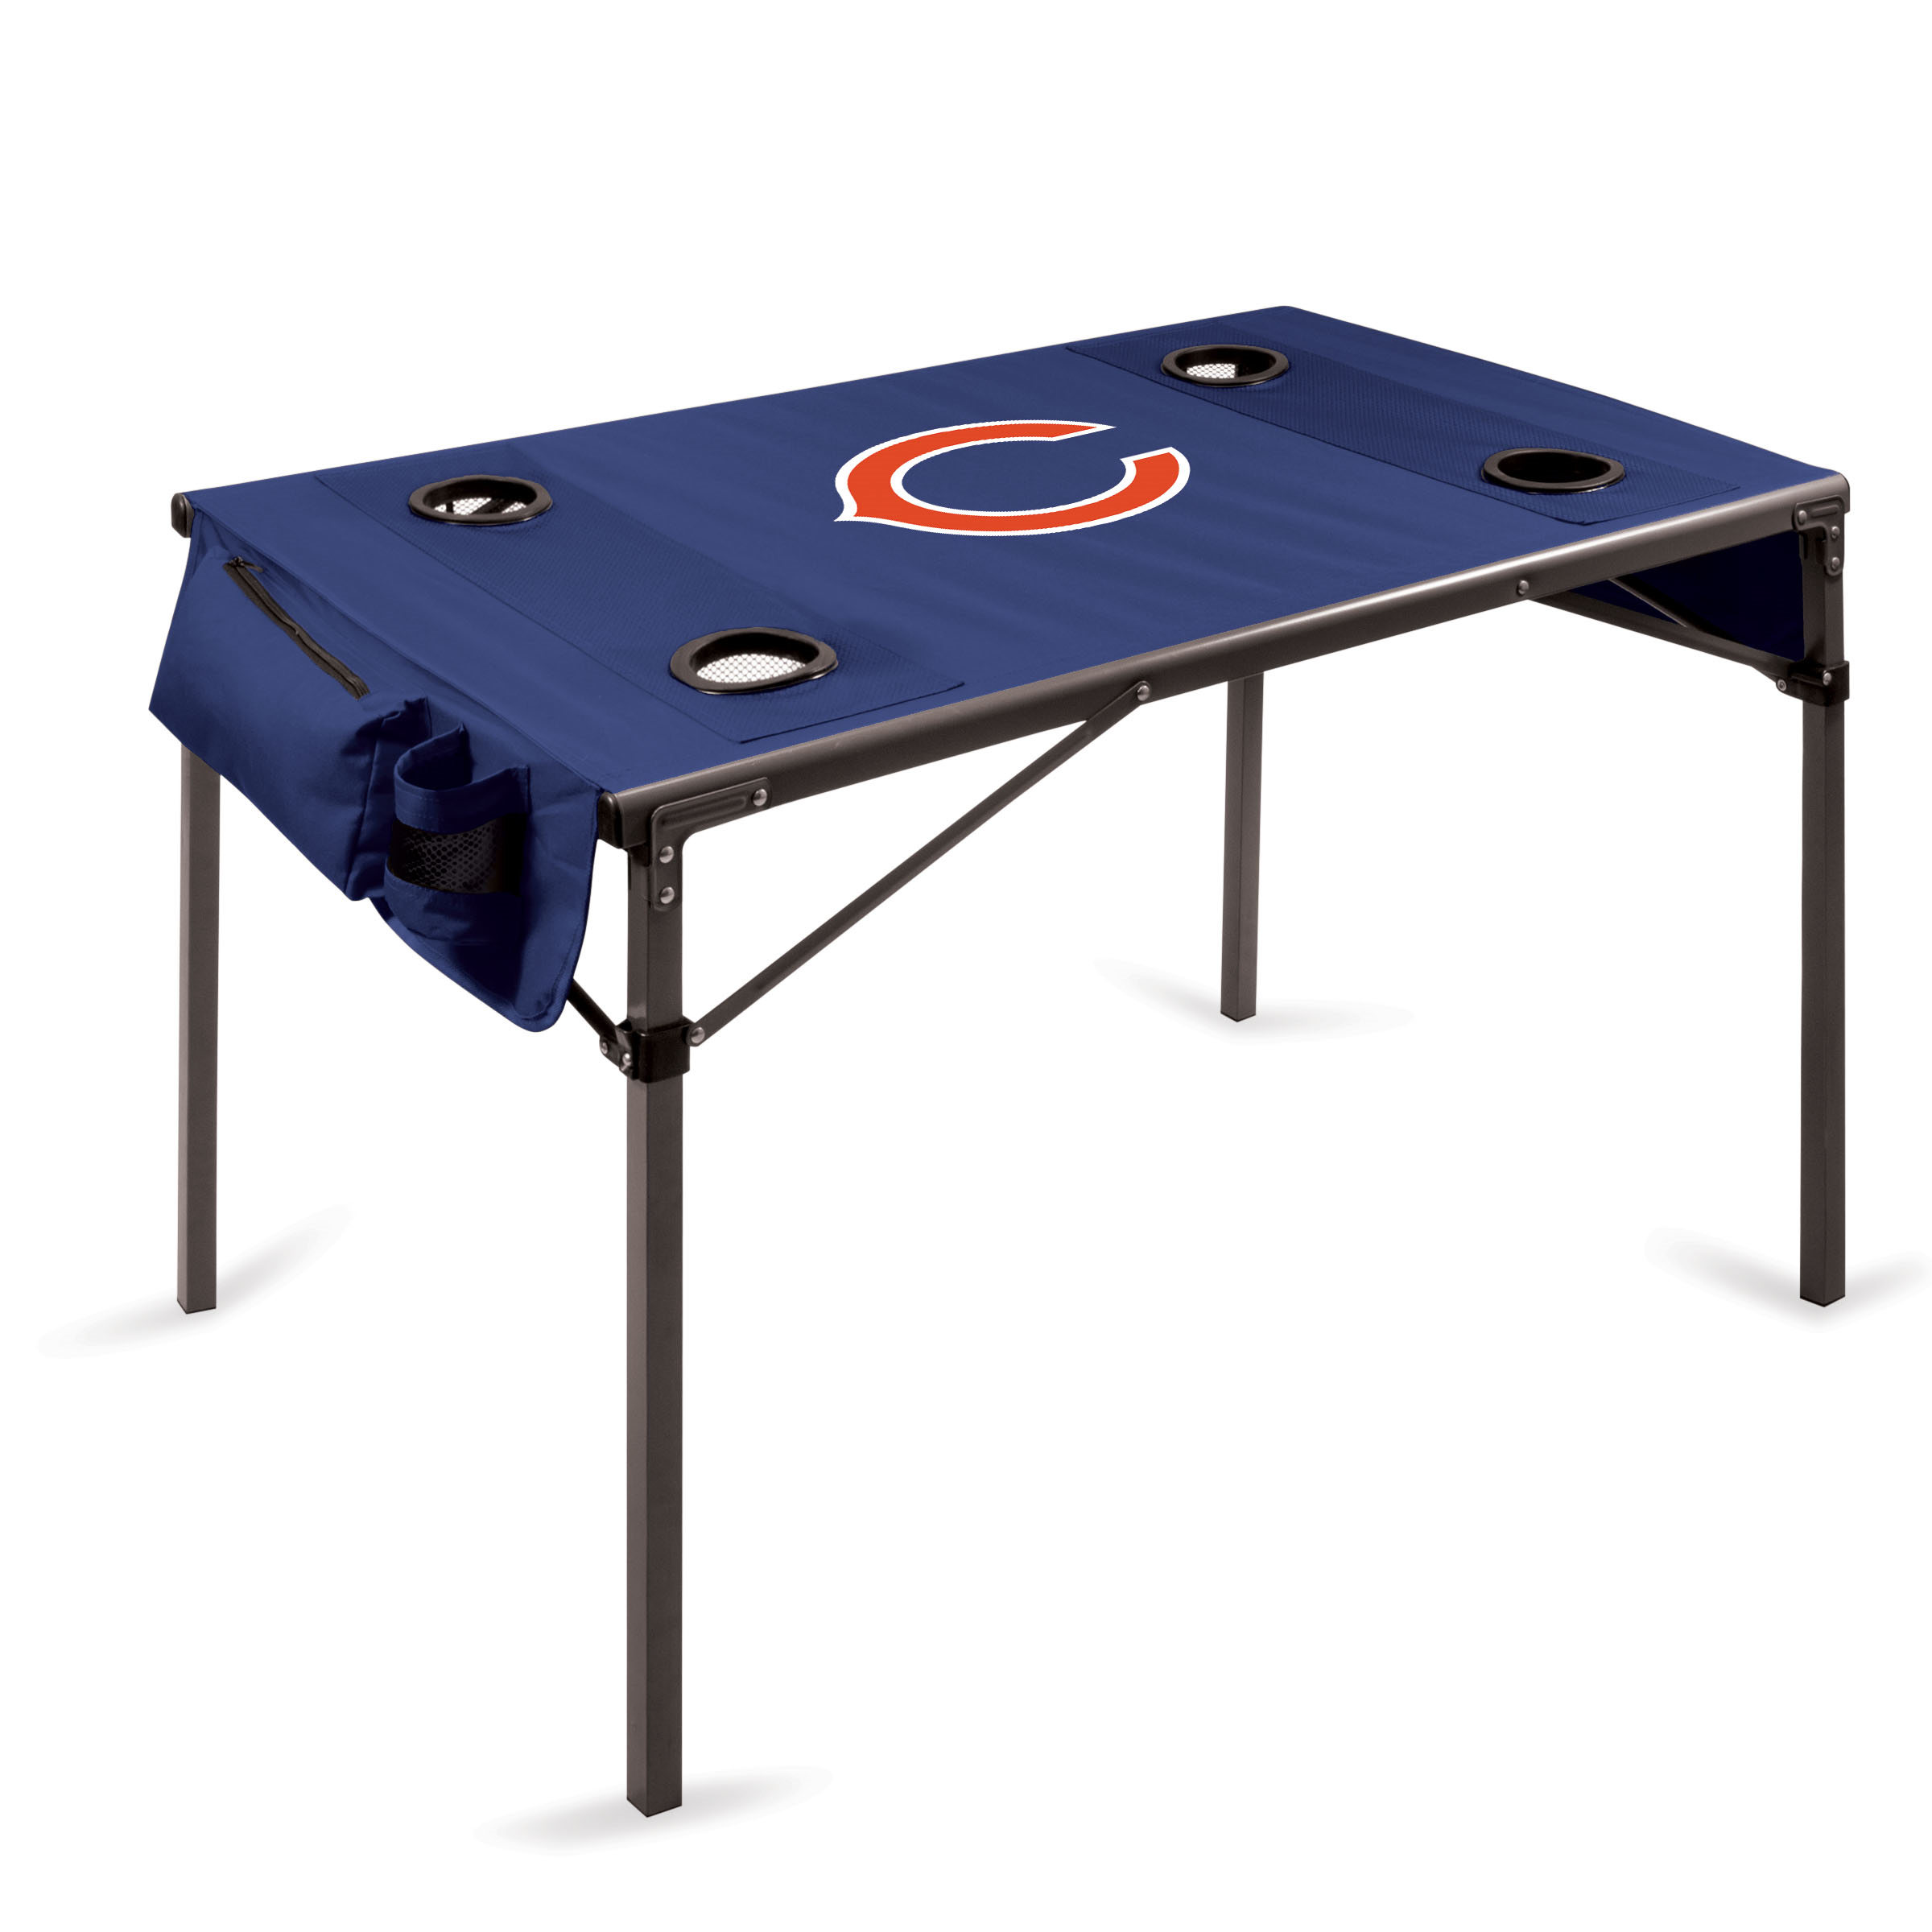 Picnic Time Nfl Travel Table Chicago Bears